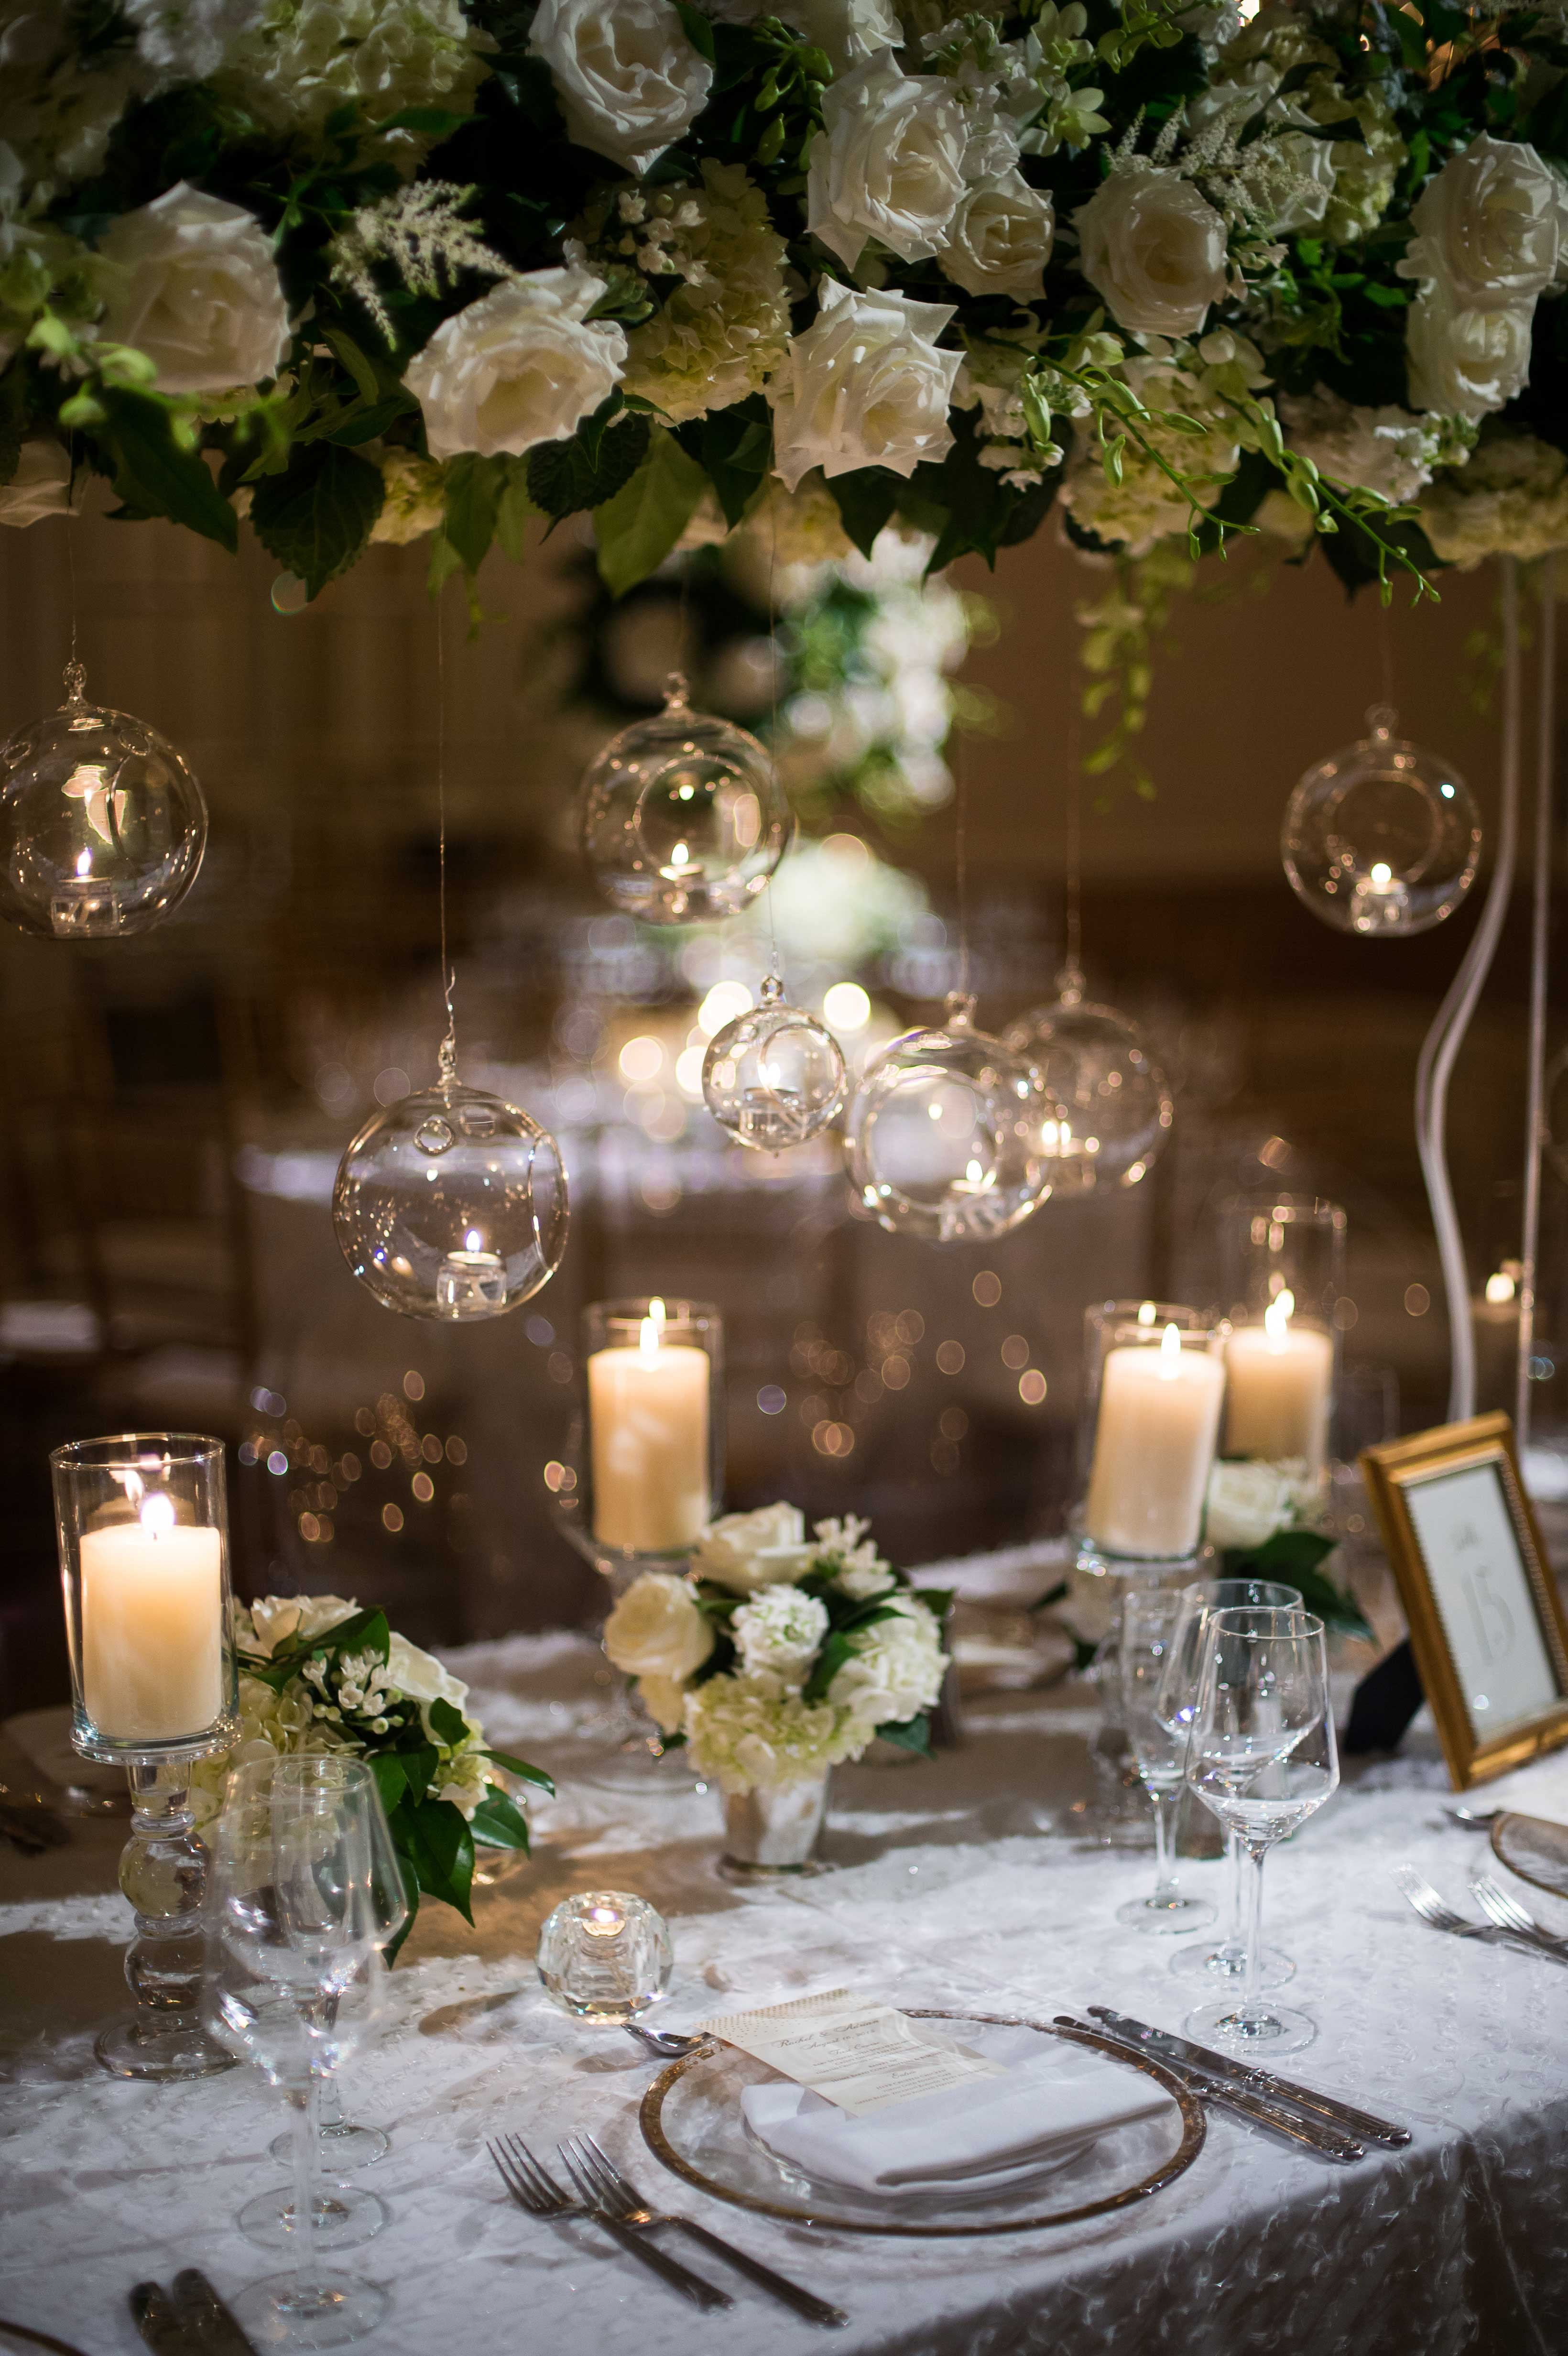 White rose and hydrangea overhead centerpiece with glass globes